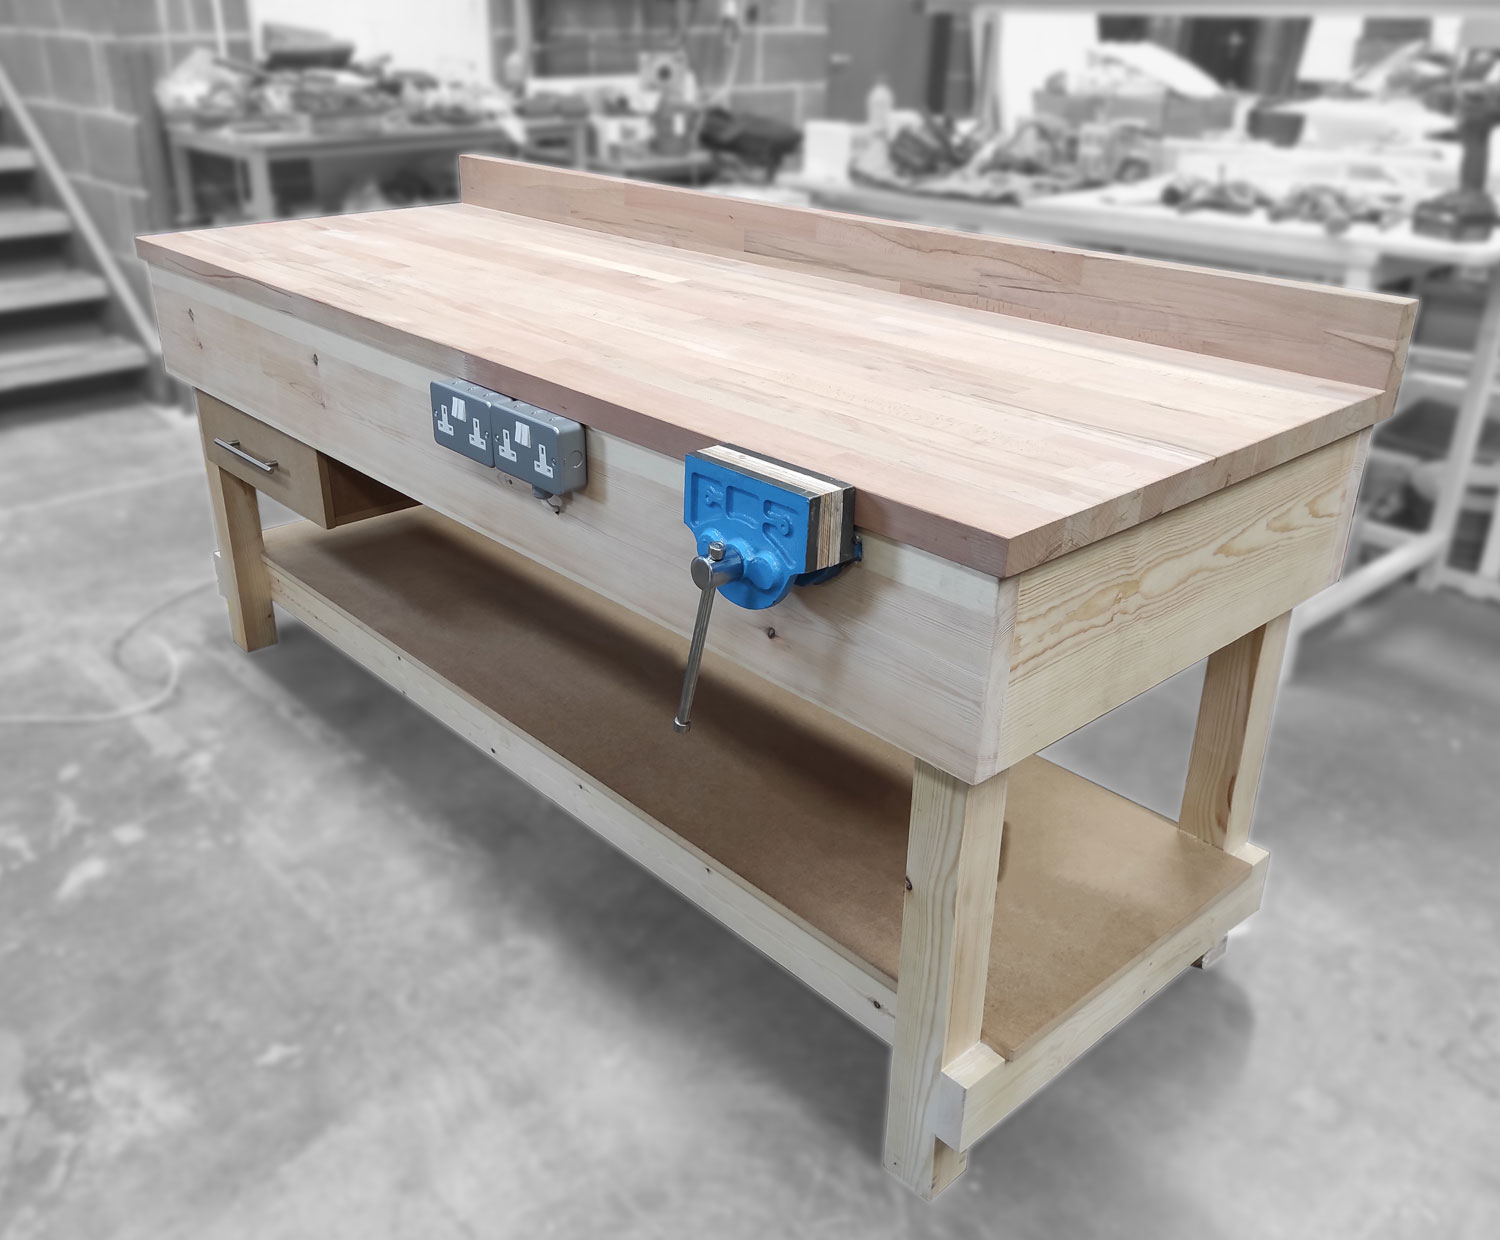 Wooden workbench with vice